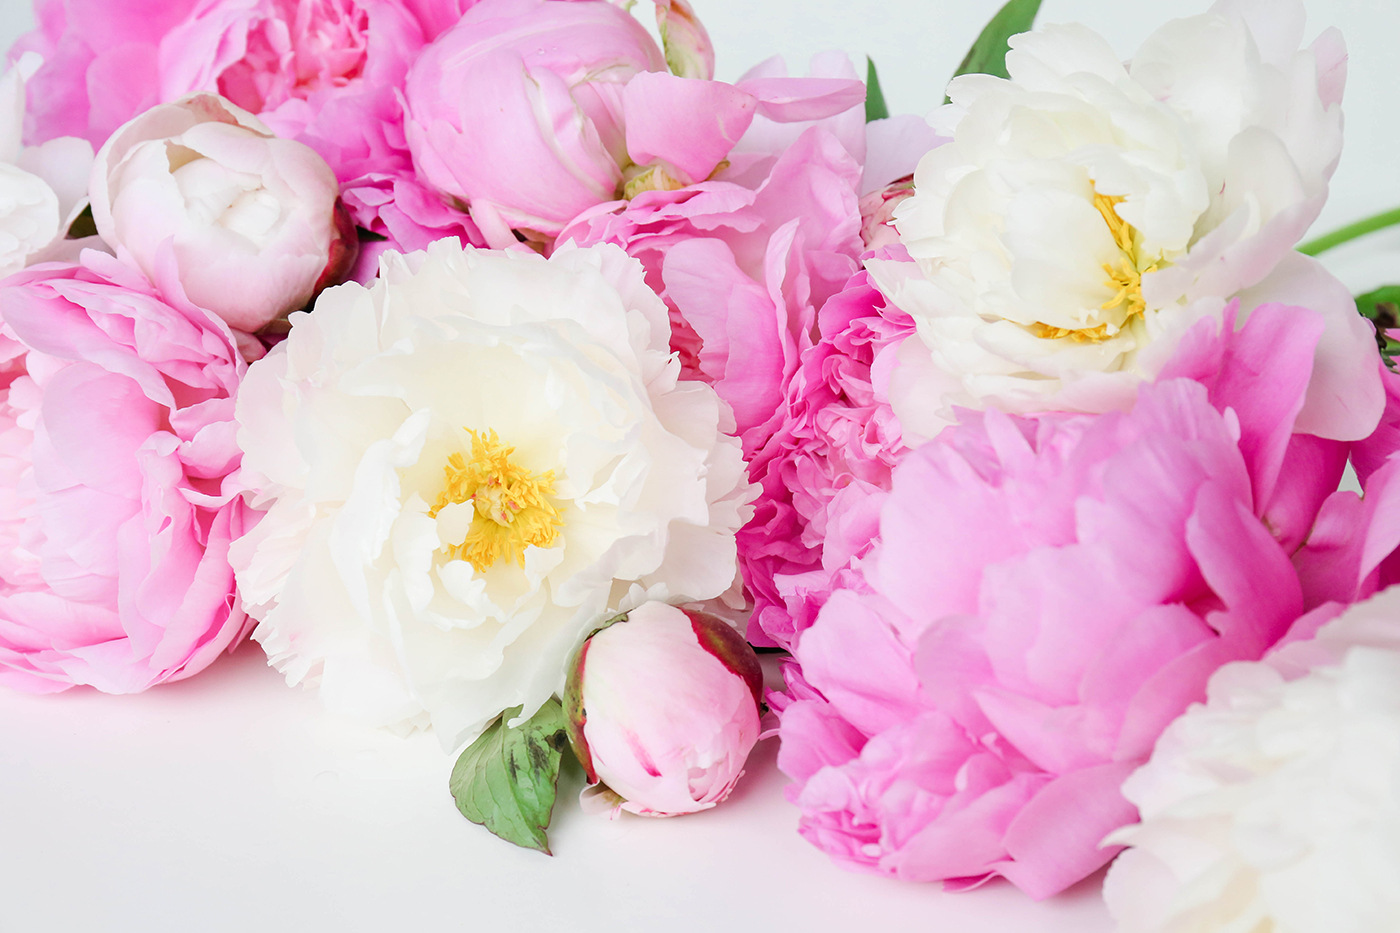 We Ve Created A Pink Peonies Wallpaper With 3 Three Diffe Images To Choose From So You Can Drop Dead The Beauty Too